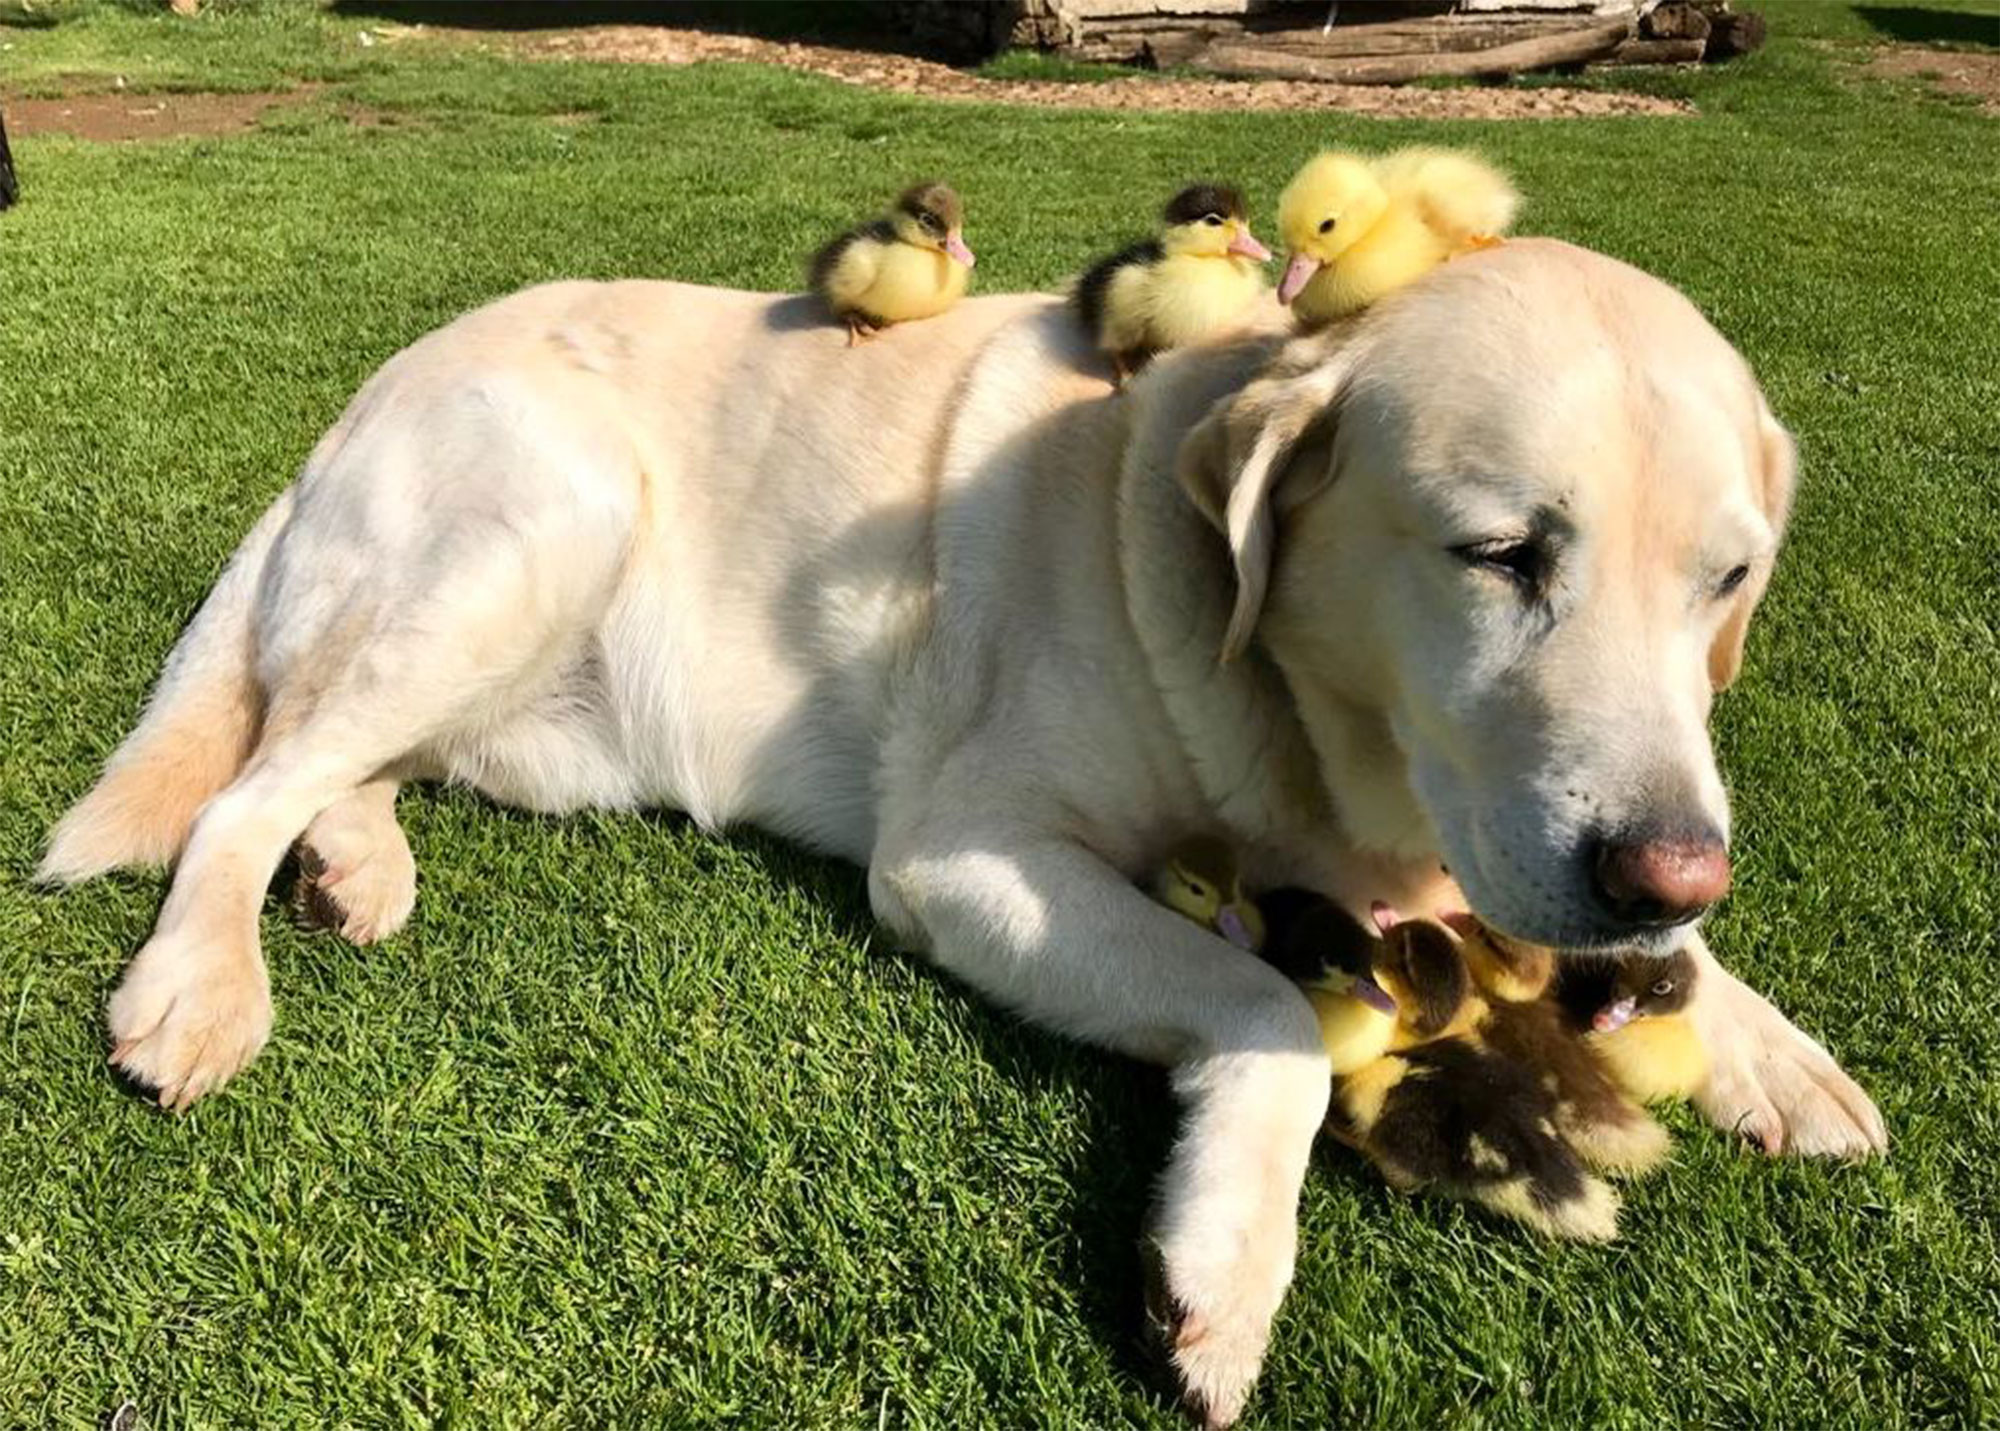 Dog adopts nine ducklings, Mountfitchet Castle, Essex, UK - 21 May 2018